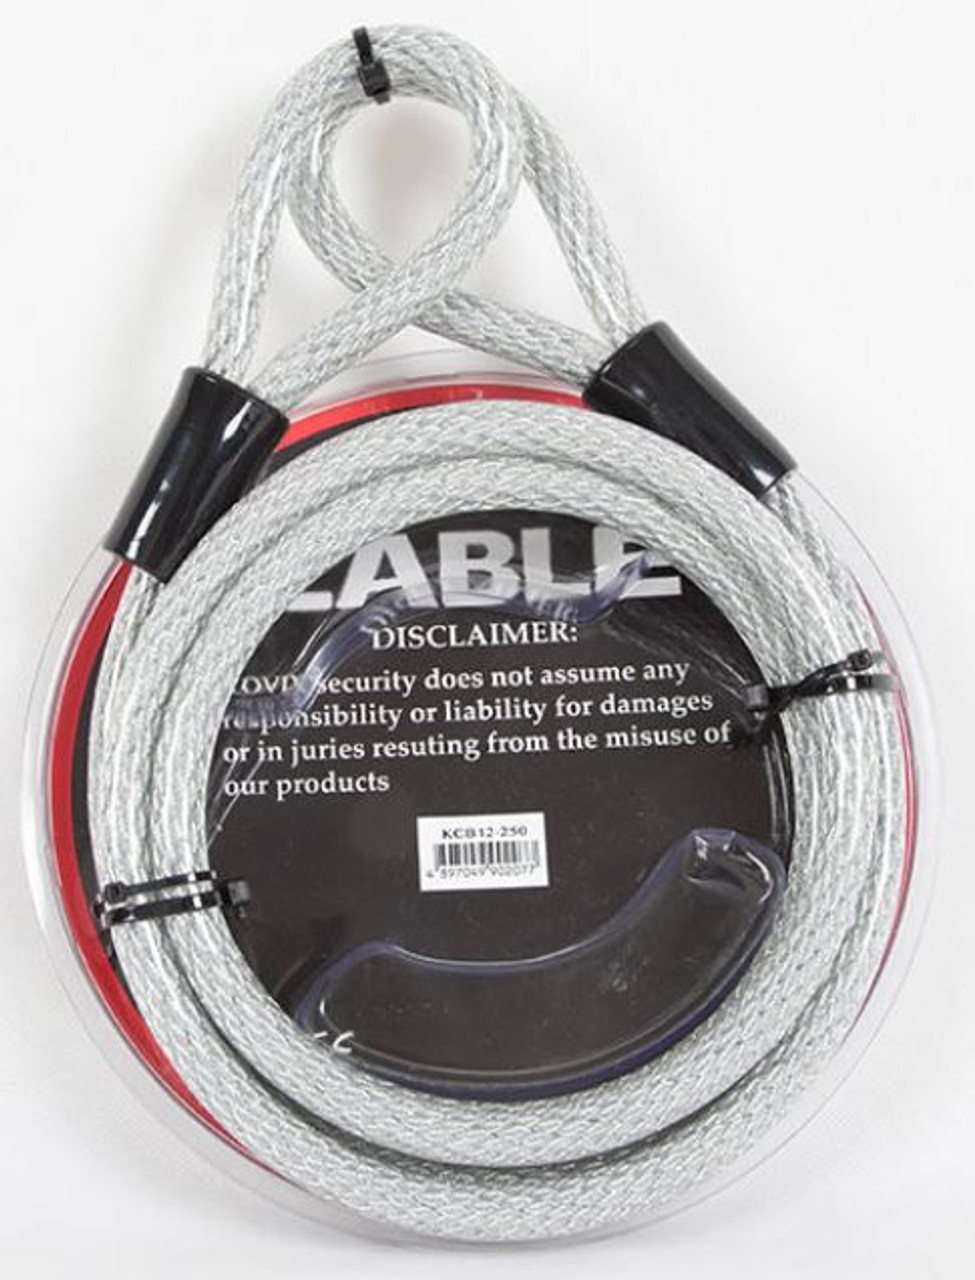 Heavy Duty Security Cable, ideal with alarmed locks.